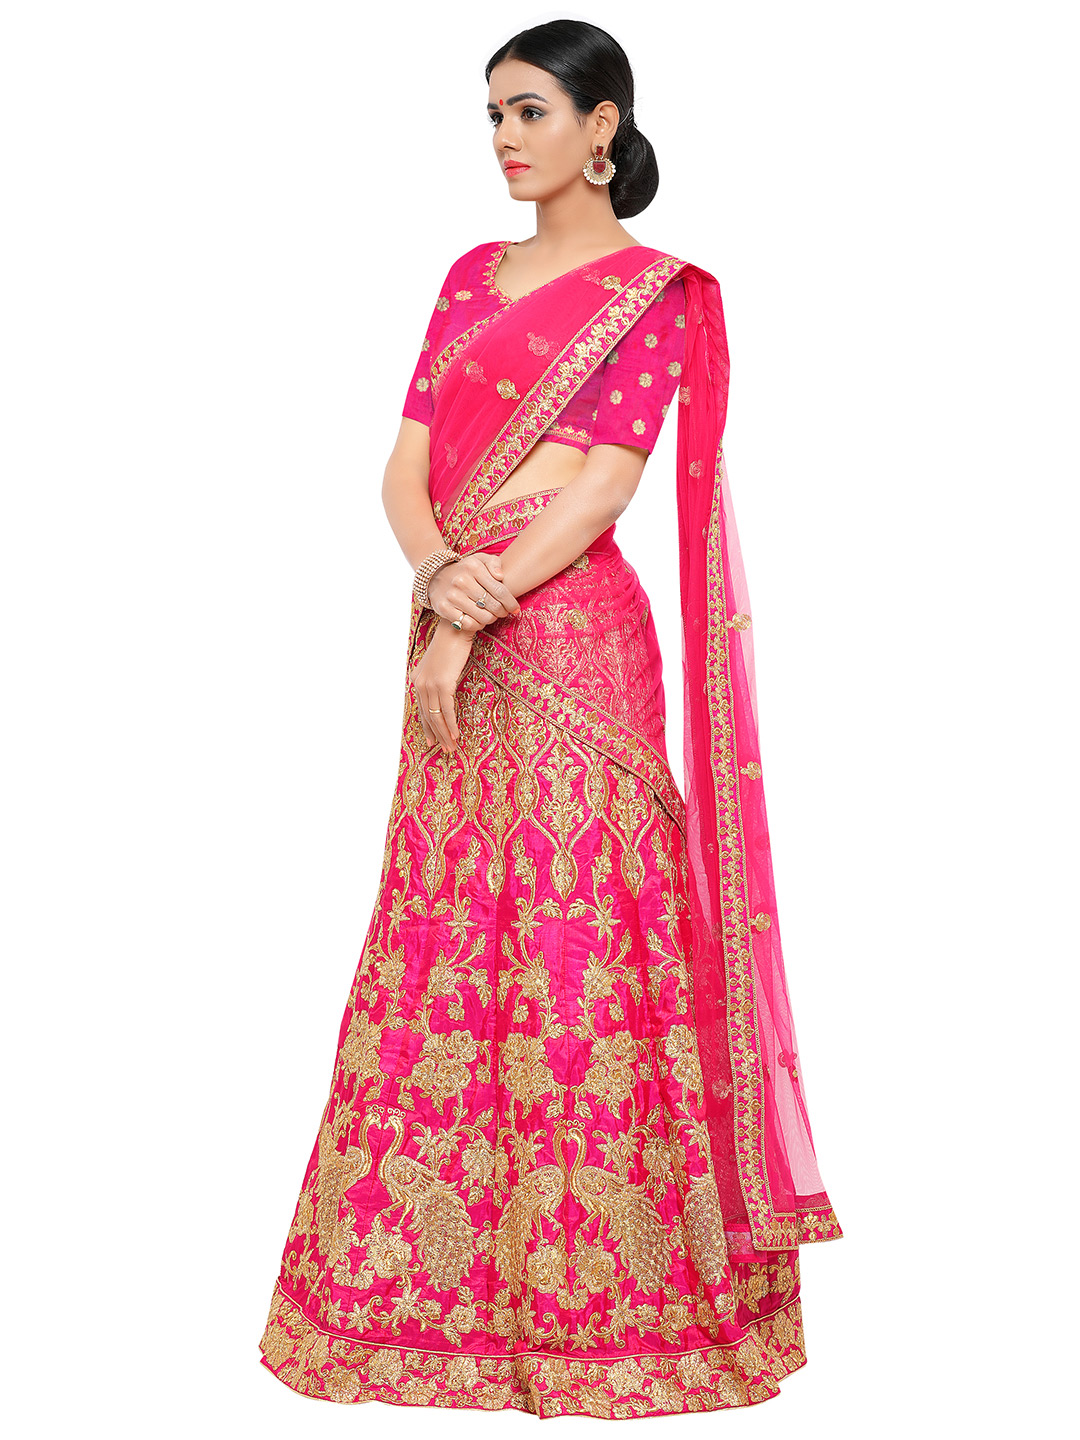 Hot Pink Colored Embroidered Bhagalpuri Silk Lehenga Choli